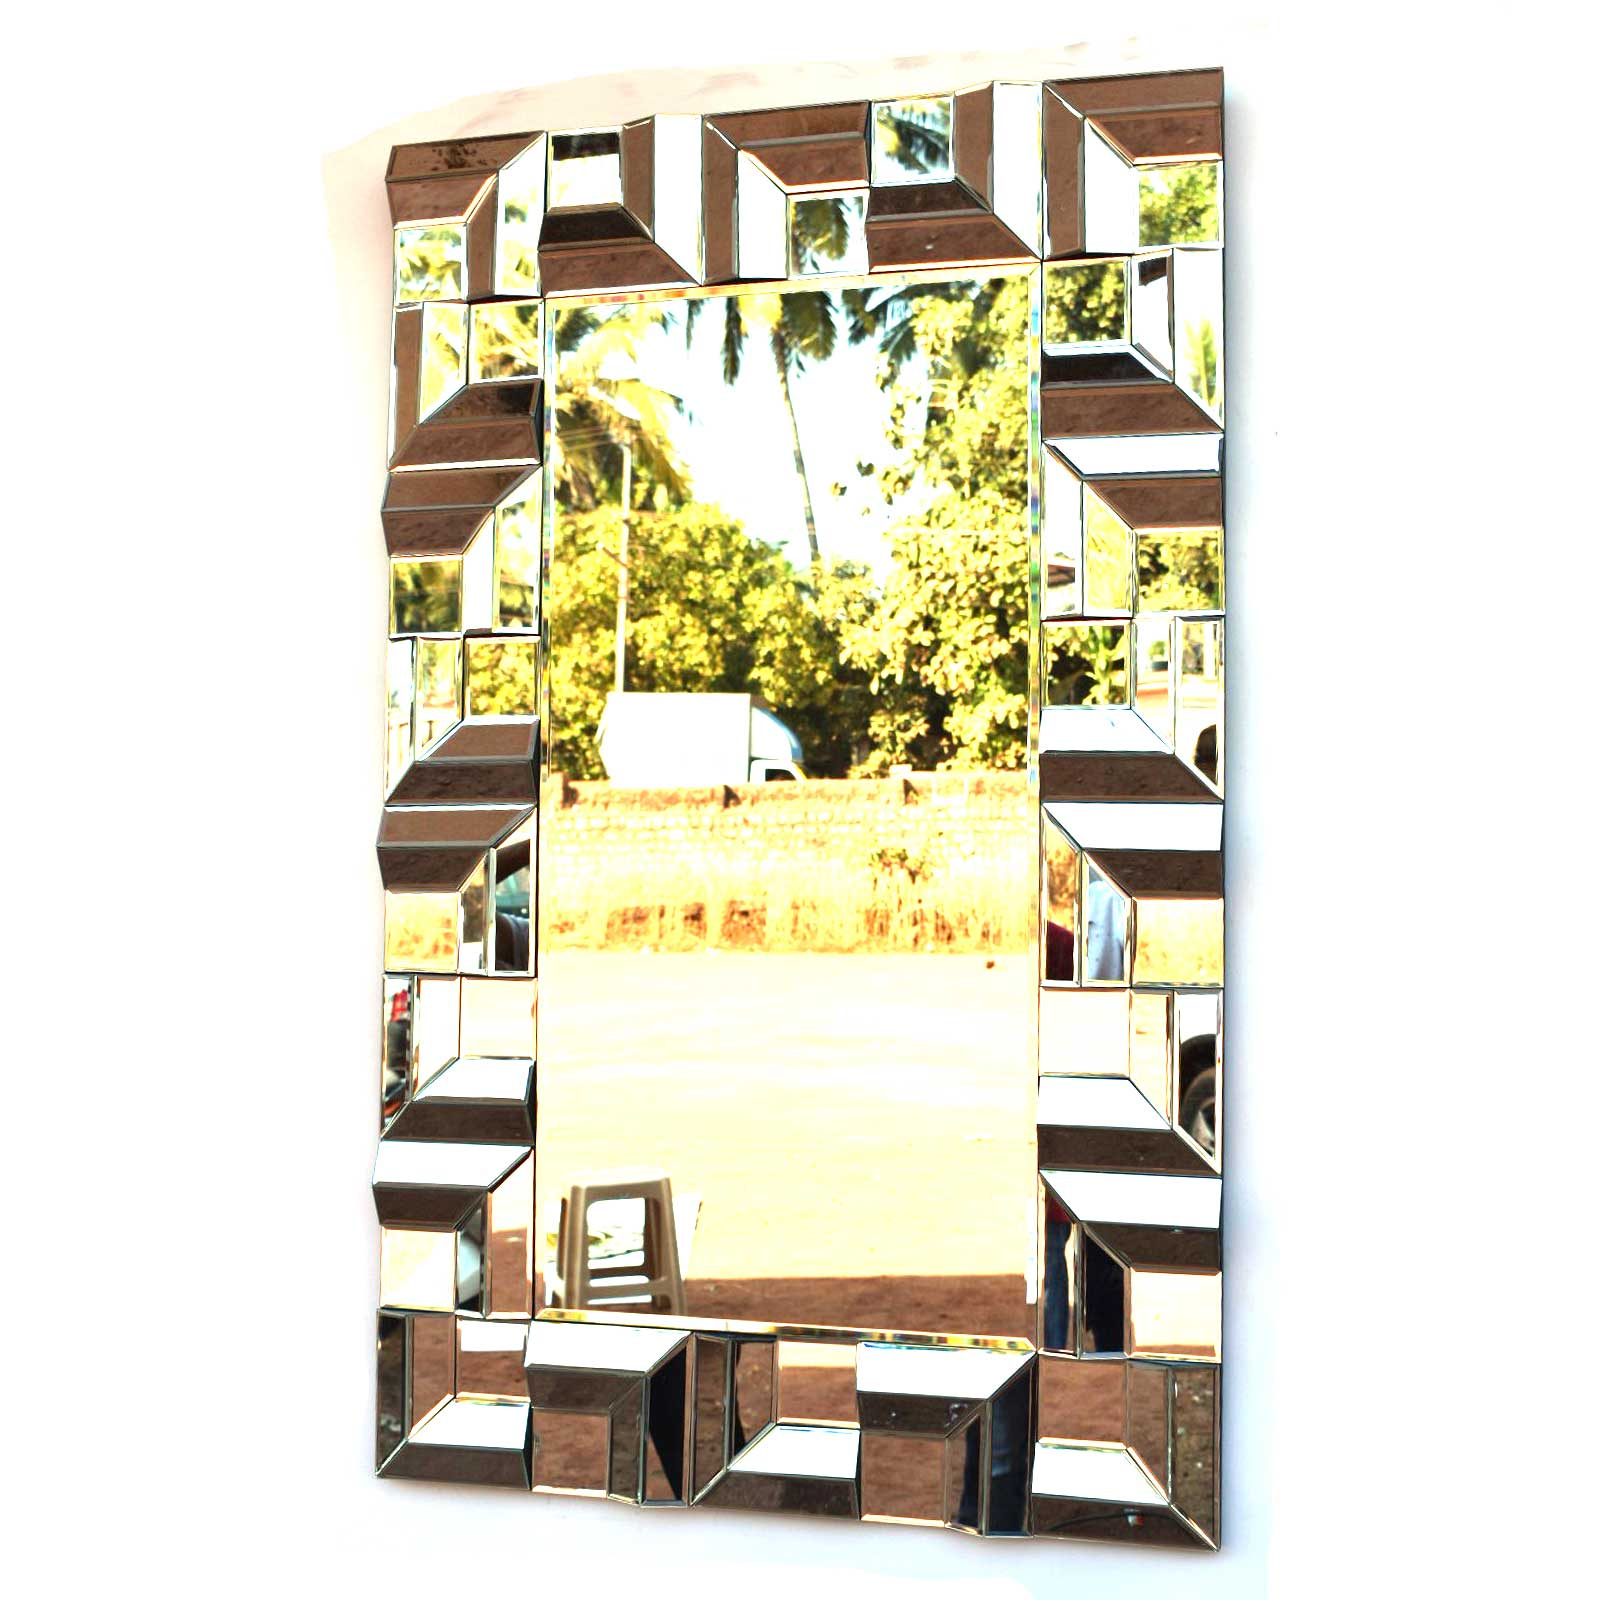 Most Recent Brizzio Ps 013 Rectangular Multi Panel Decorative Wall Mirror Pertaining To Multi Panel Wall Mirrors (View 9 of 20)